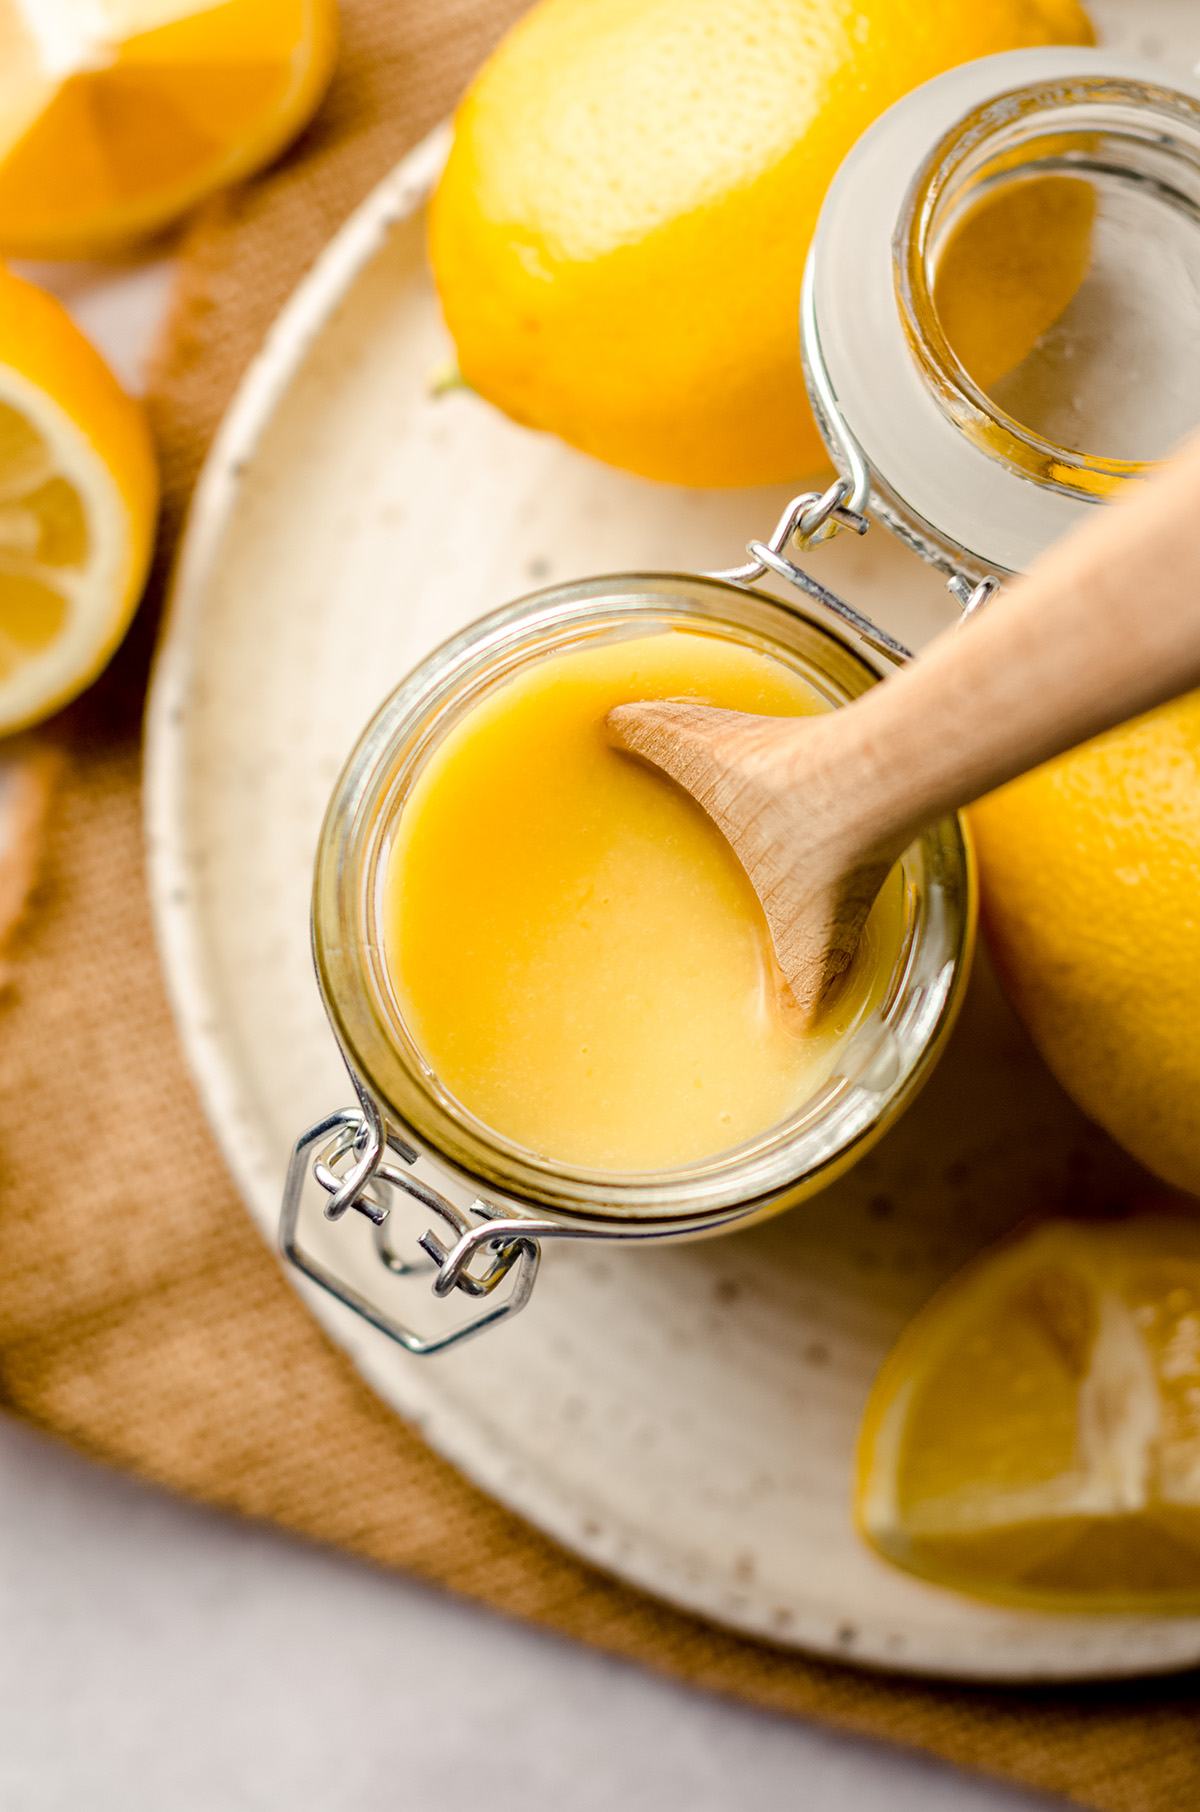 aerial photo of jar of lemon curd with a wooden spoon in it